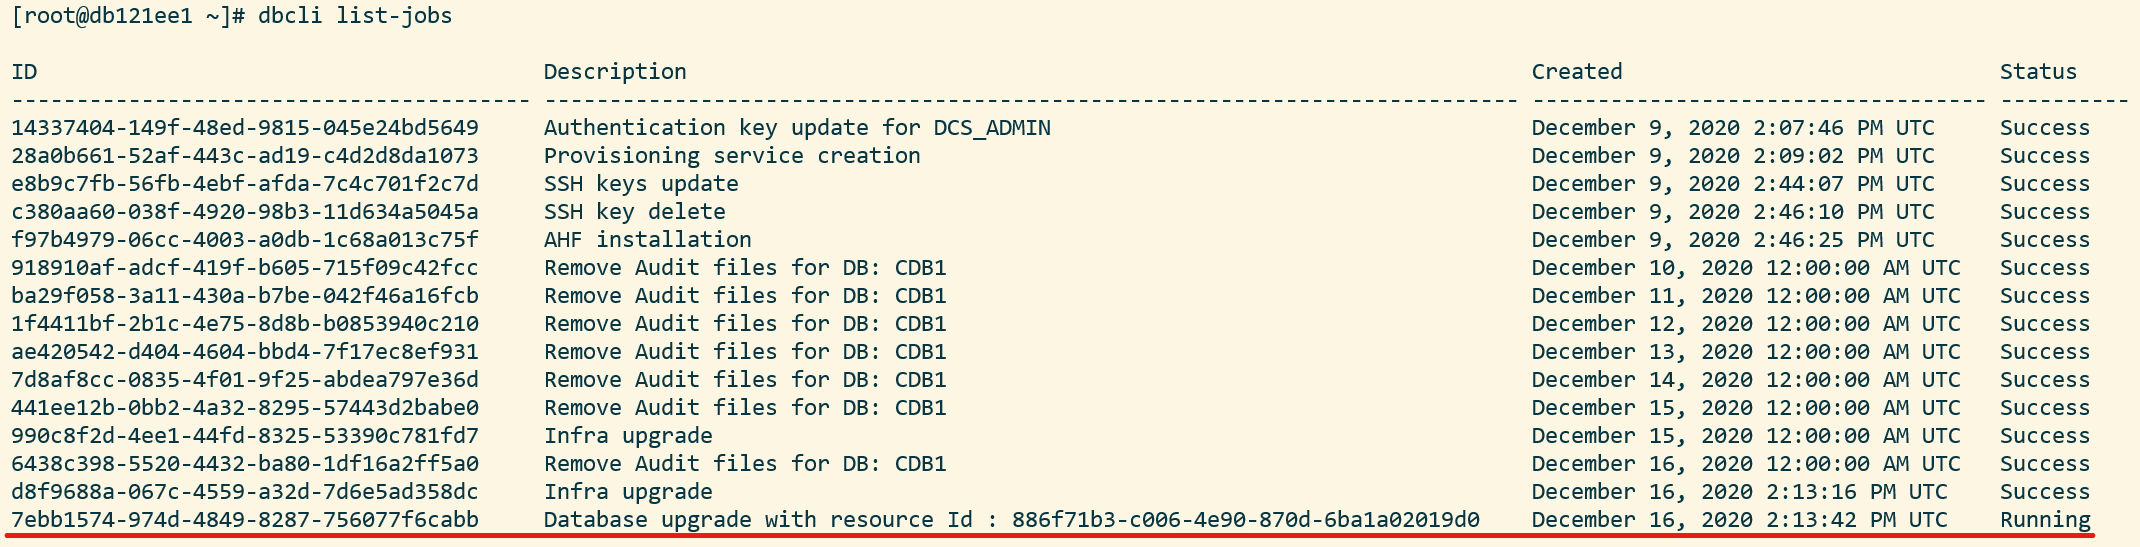 Use dbcli list-jobs to list the jobs - including the upgrade - that run on the host